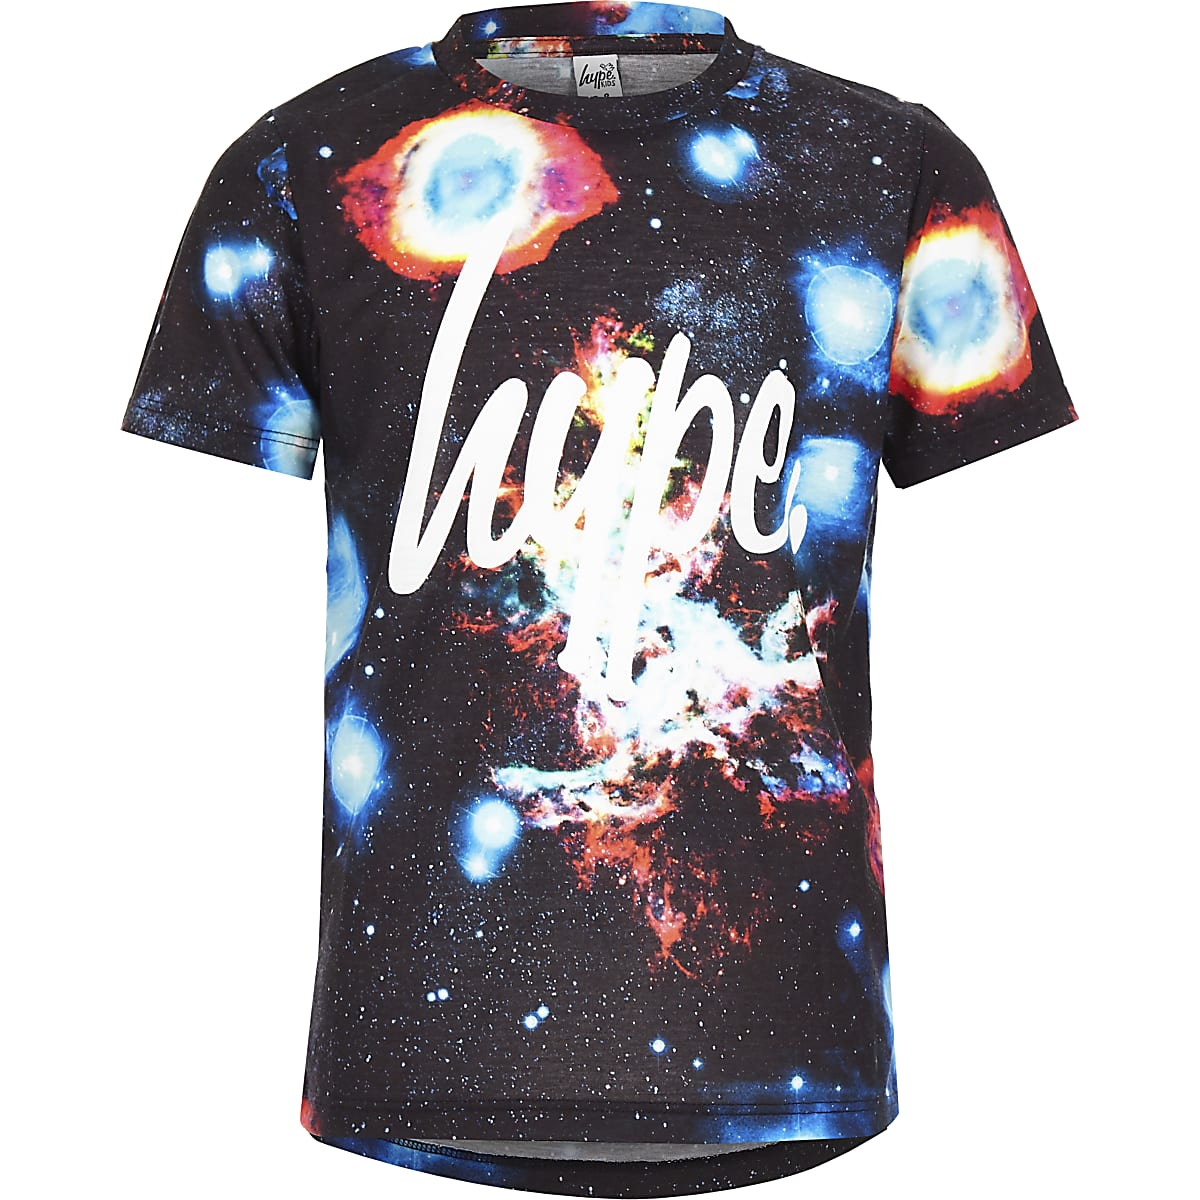 Boys Hype navy space T-shirt